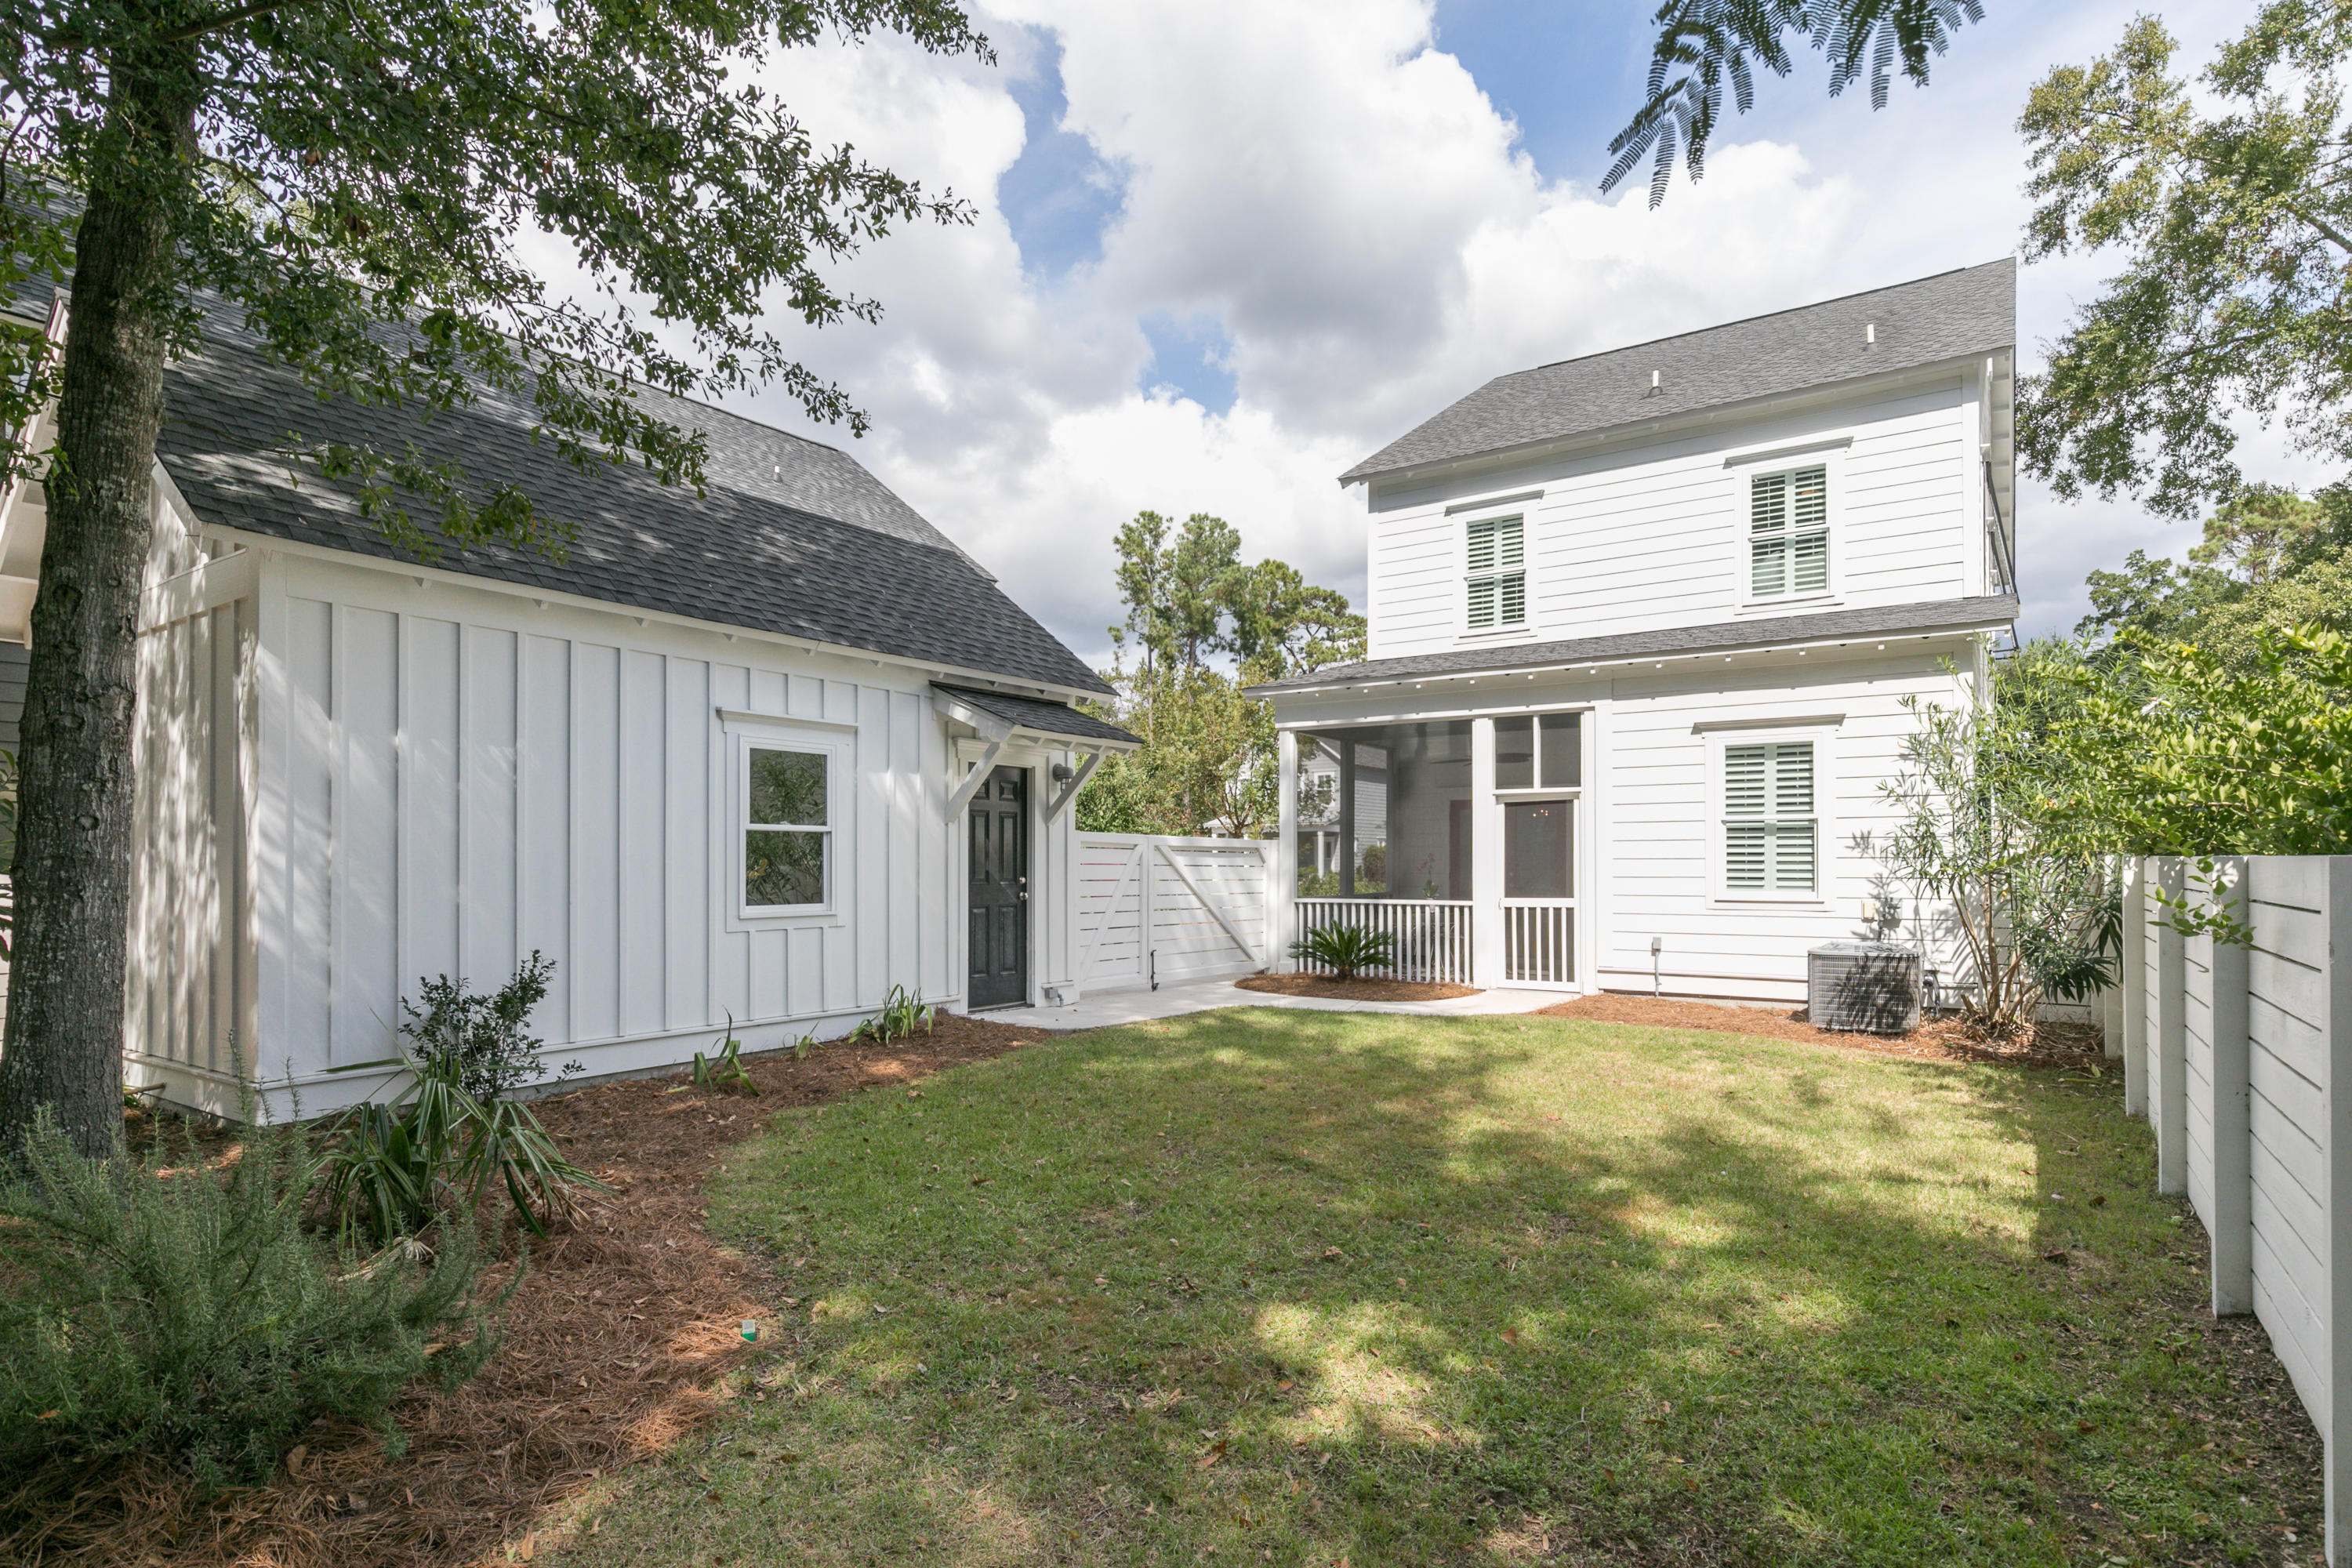 Wexford Park Homes For Sale - 1133 Wexford, Mount Pleasant, SC - 1